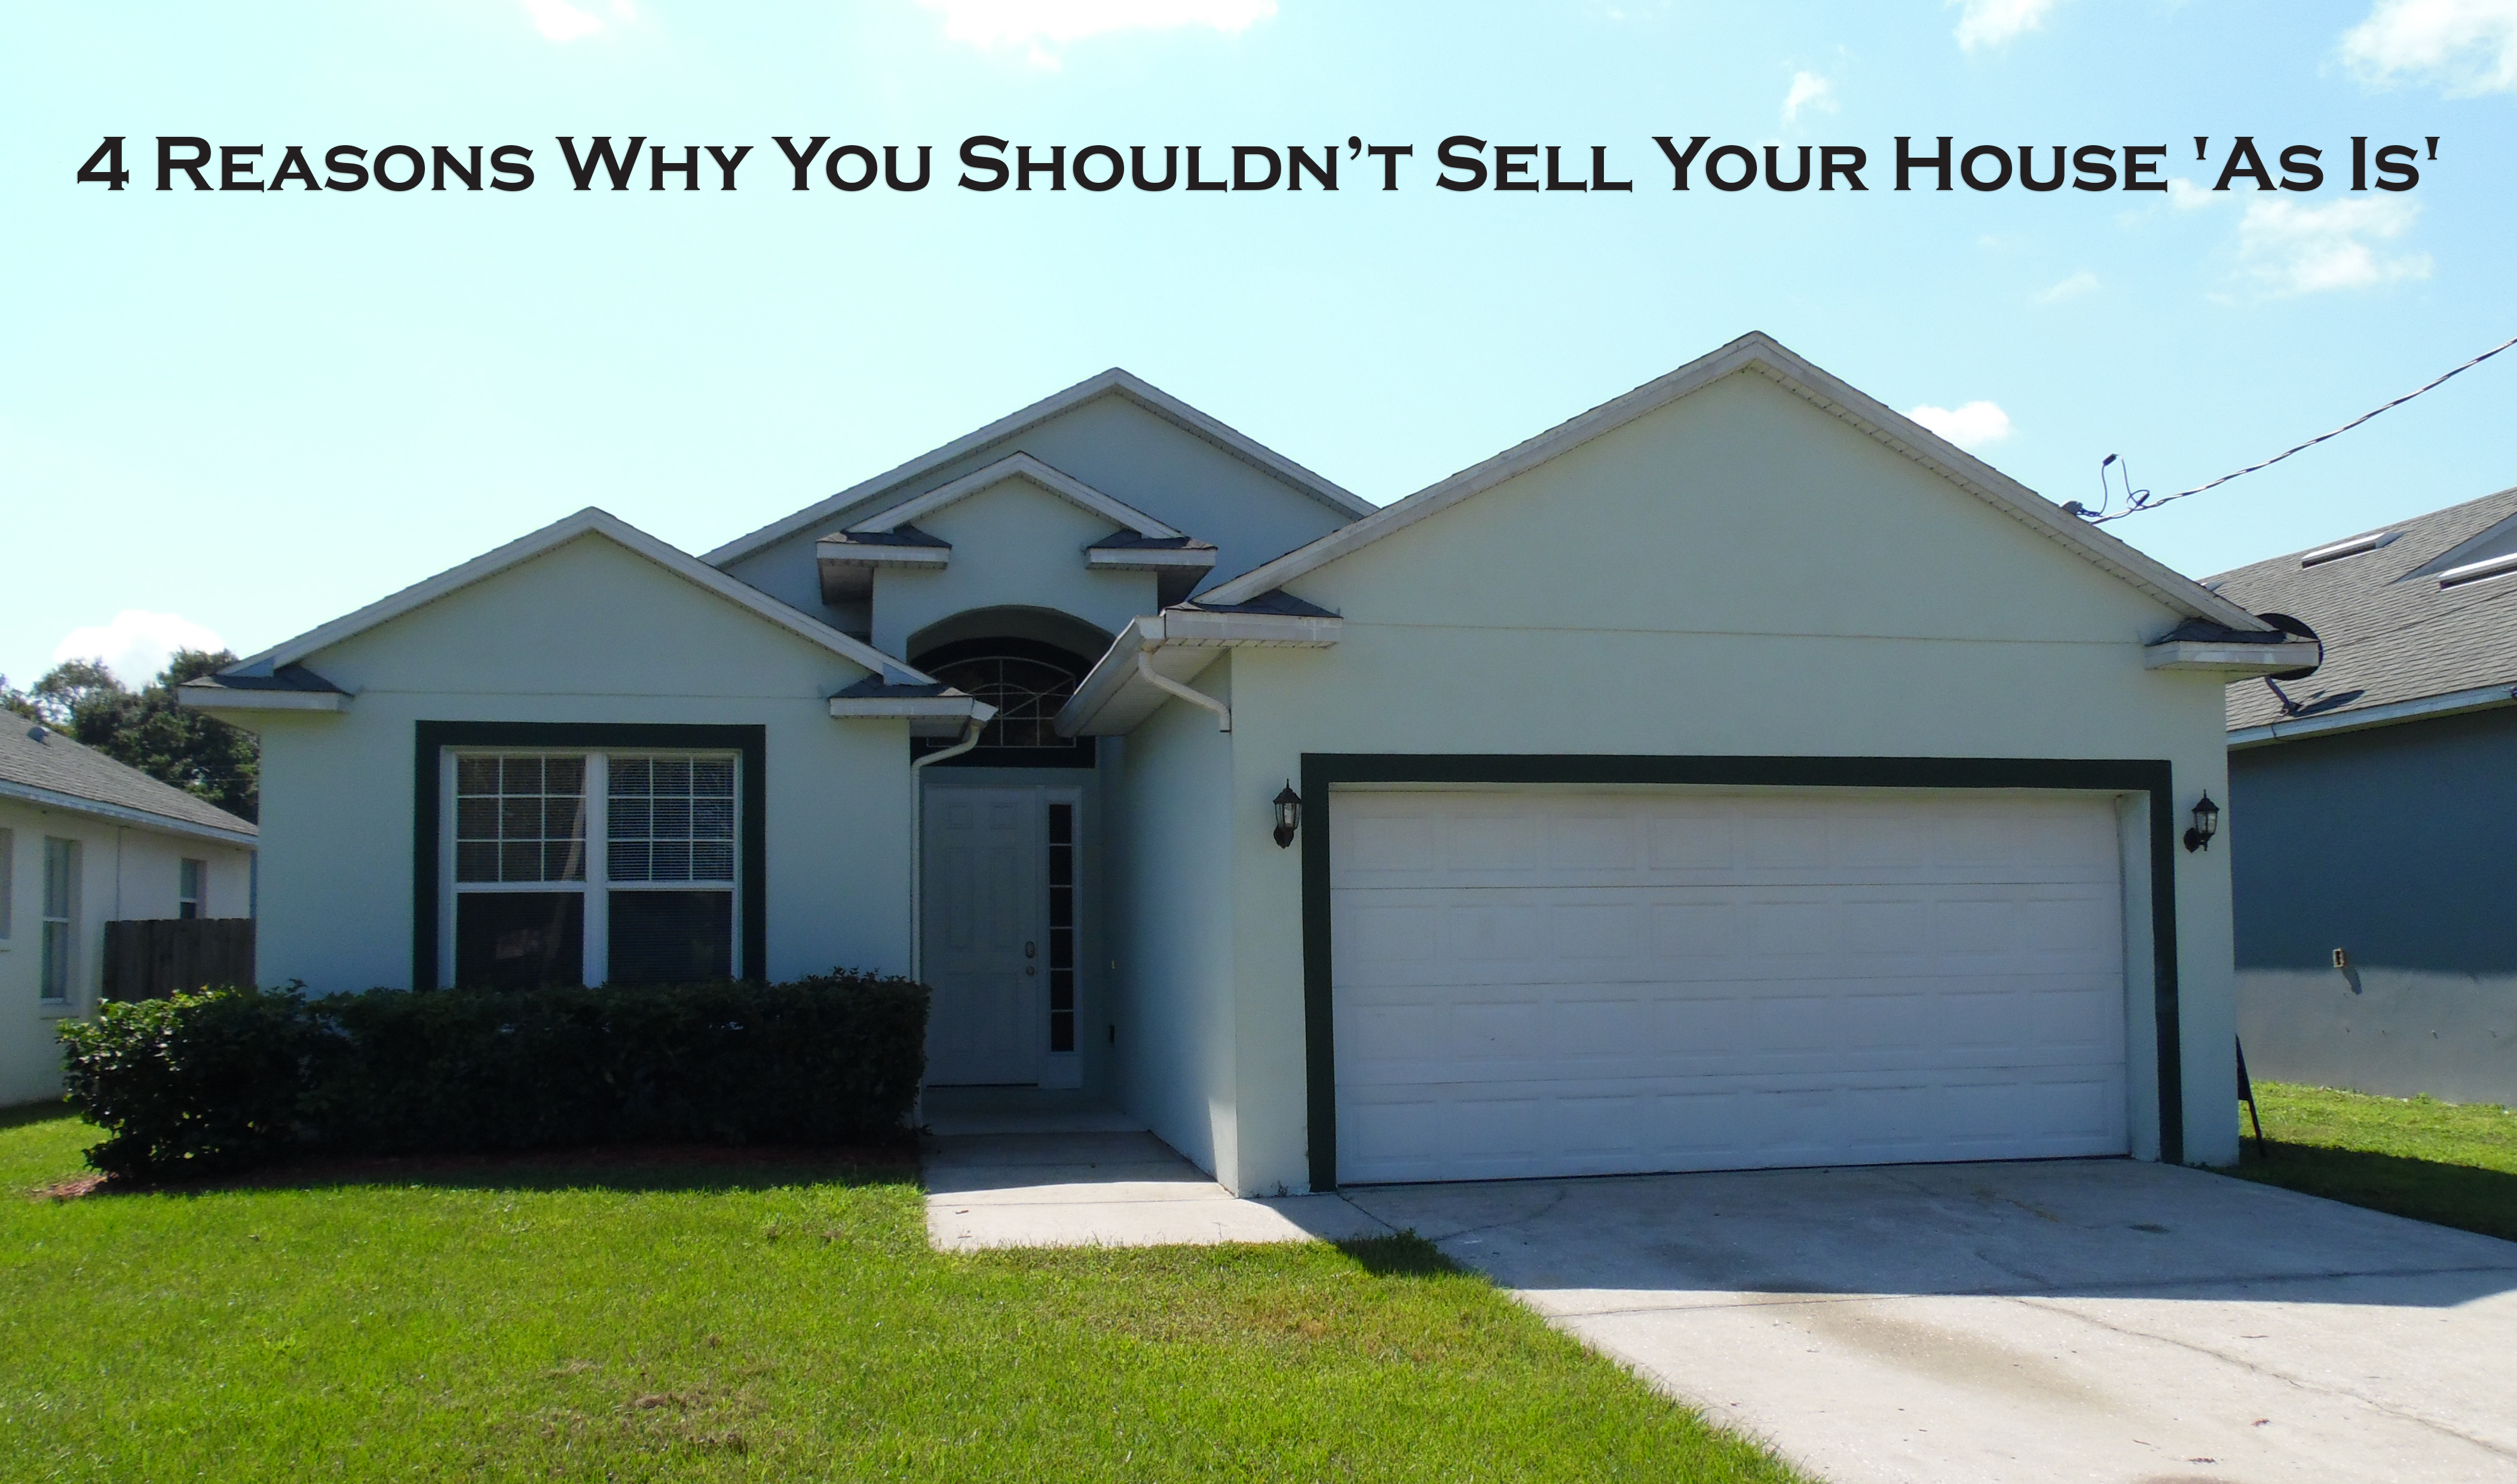 4 Reasons Why You Shouldn't Sell Your House 'As Is'